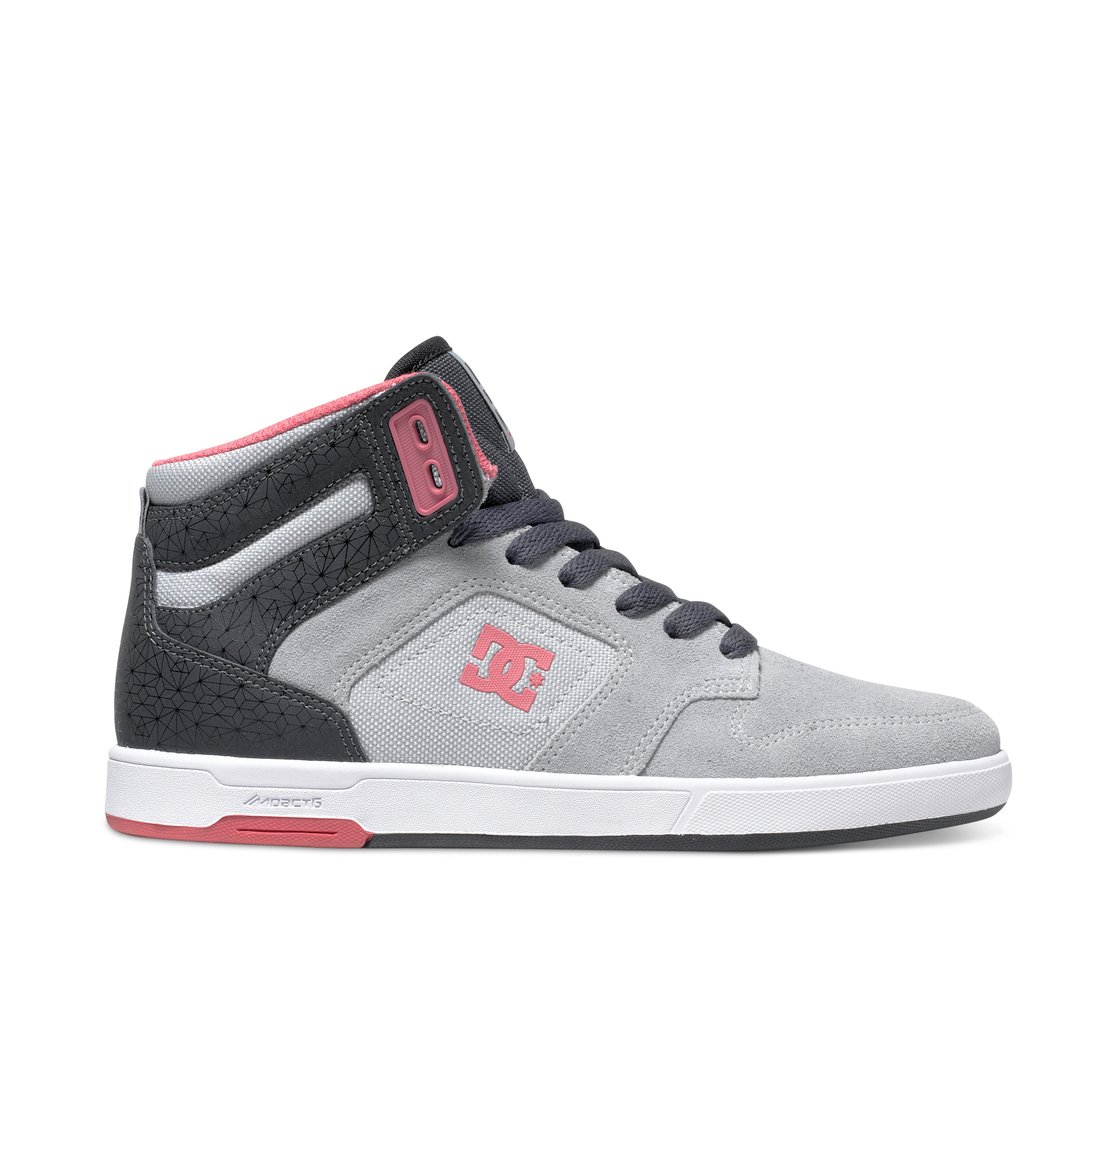 Nyjah SE - Dcshoes������� ������� ���� Nyjah SE �� DC Shoes. <br>��������������: ������� ��������� ������ ��������, ����������� ���� �� ���� � �����, ������� ��������������� ��� � ������������ �������� � ��������� ����������, ������� DC �� ���, ��� ��������� �������